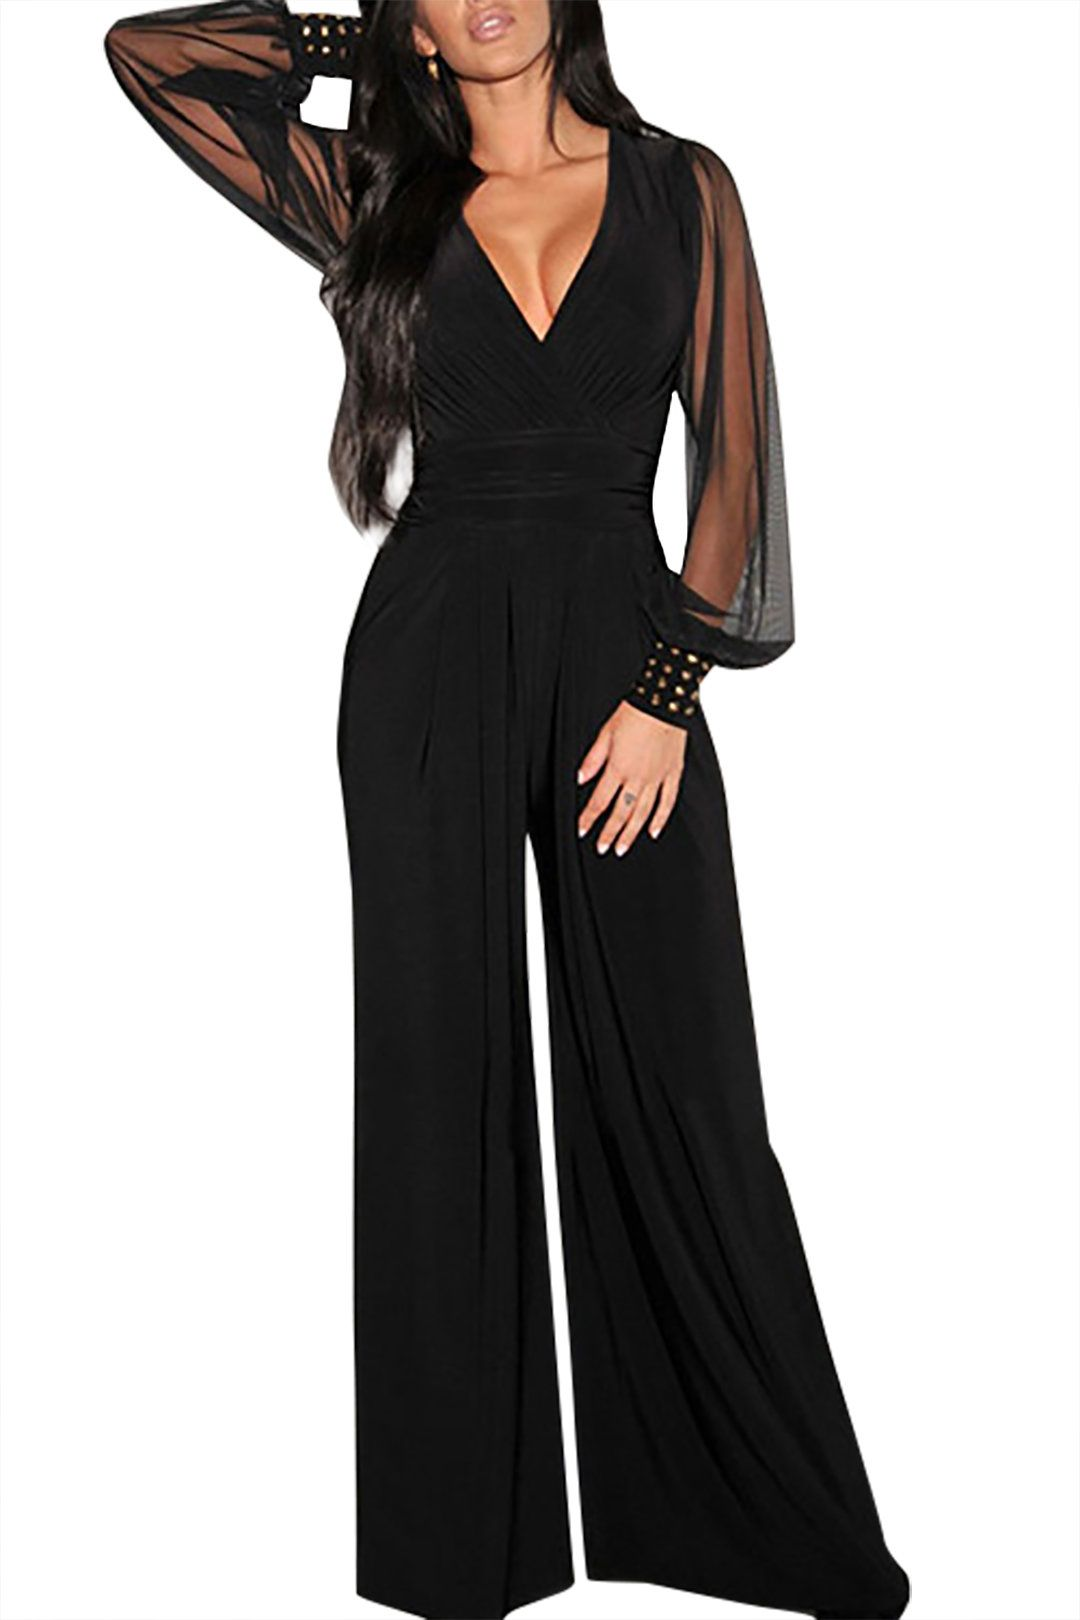 819bc7bd3924 Black Beading Long Sleeves V-neck Wide Leg Trousers Jumpsuit - US ...